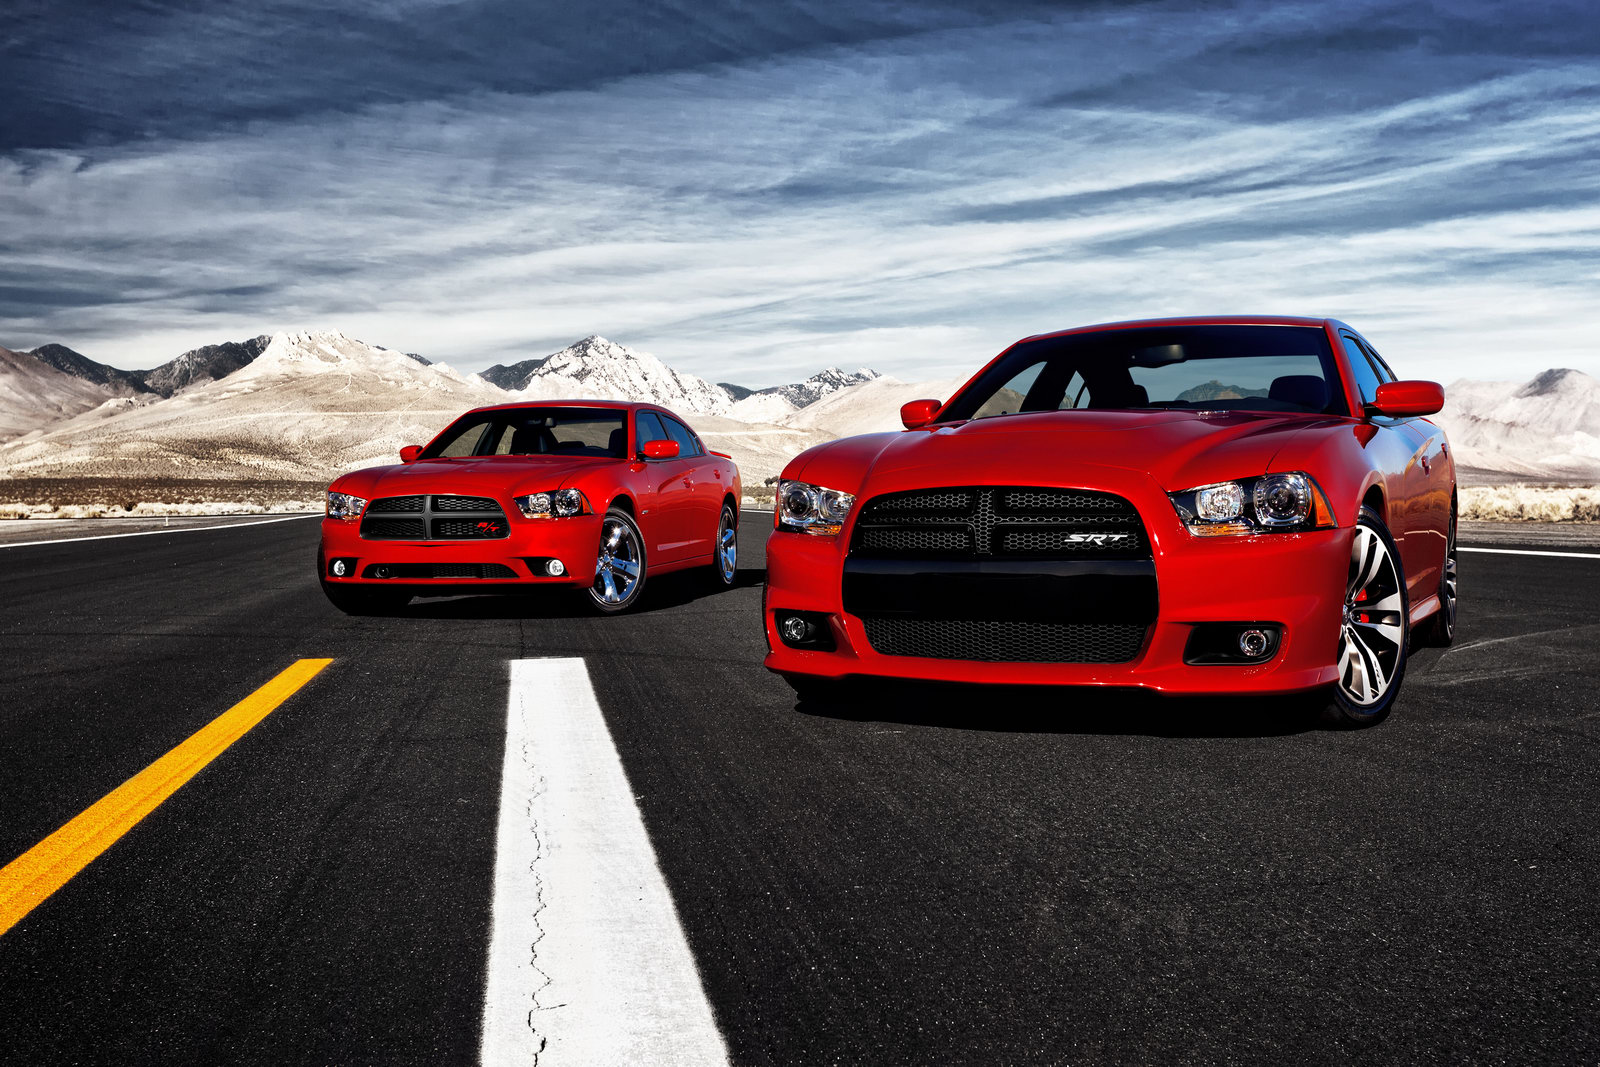 2012 Dodge Charger 27 Alfa Romeos 1.75 Liter Turbo Engine to power the New Dodge Charger TBI